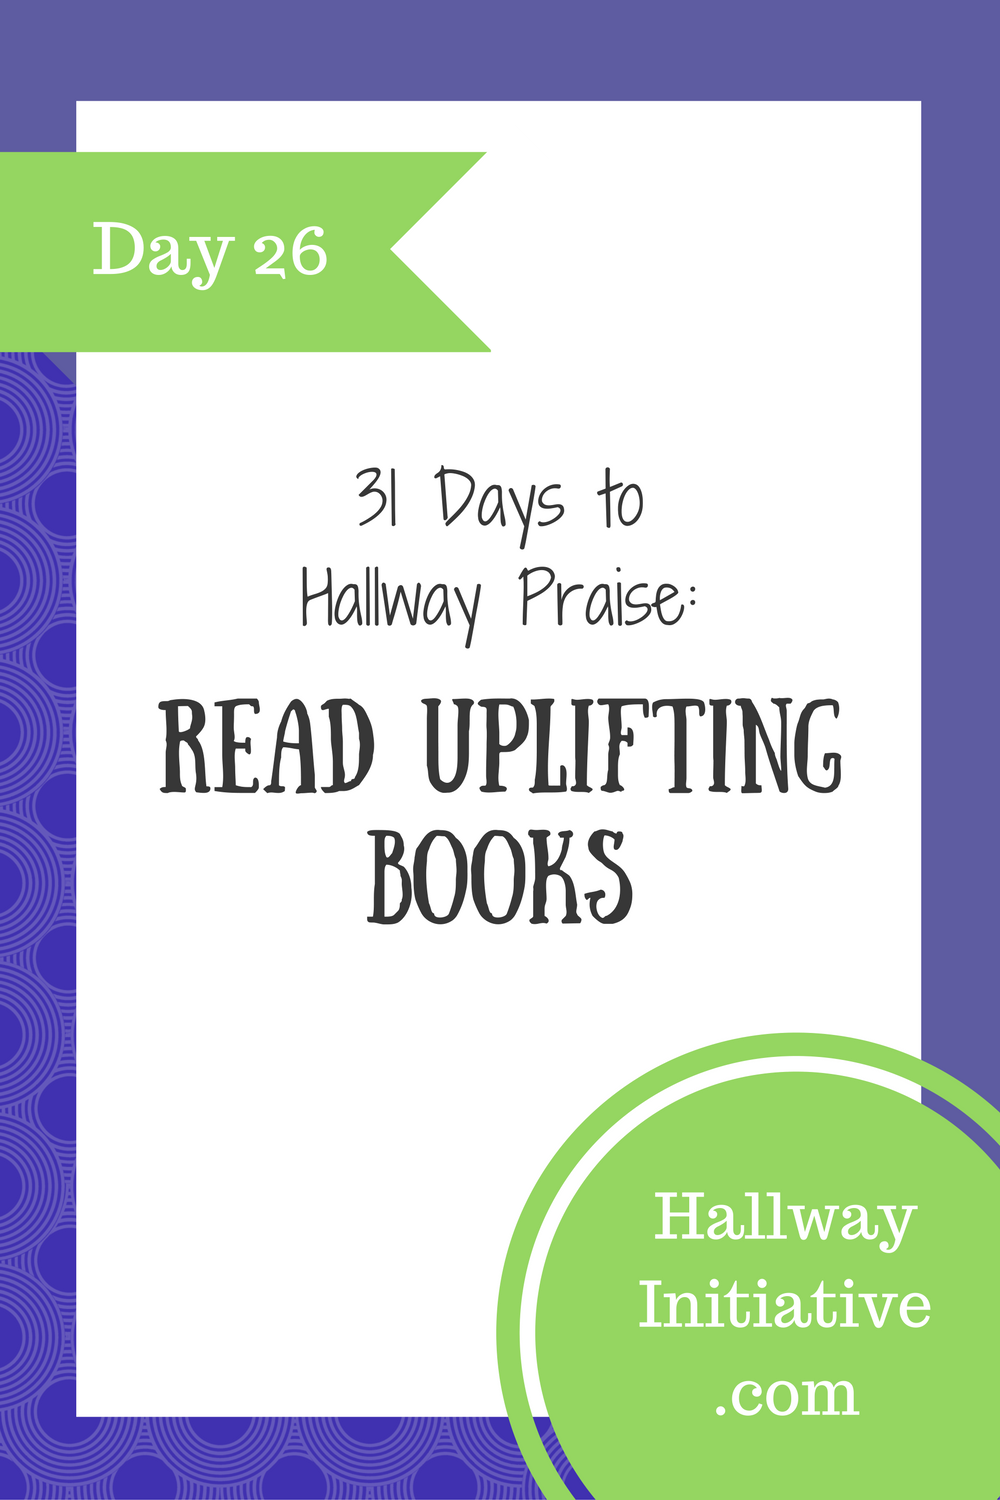 Day 26: read uplifting books